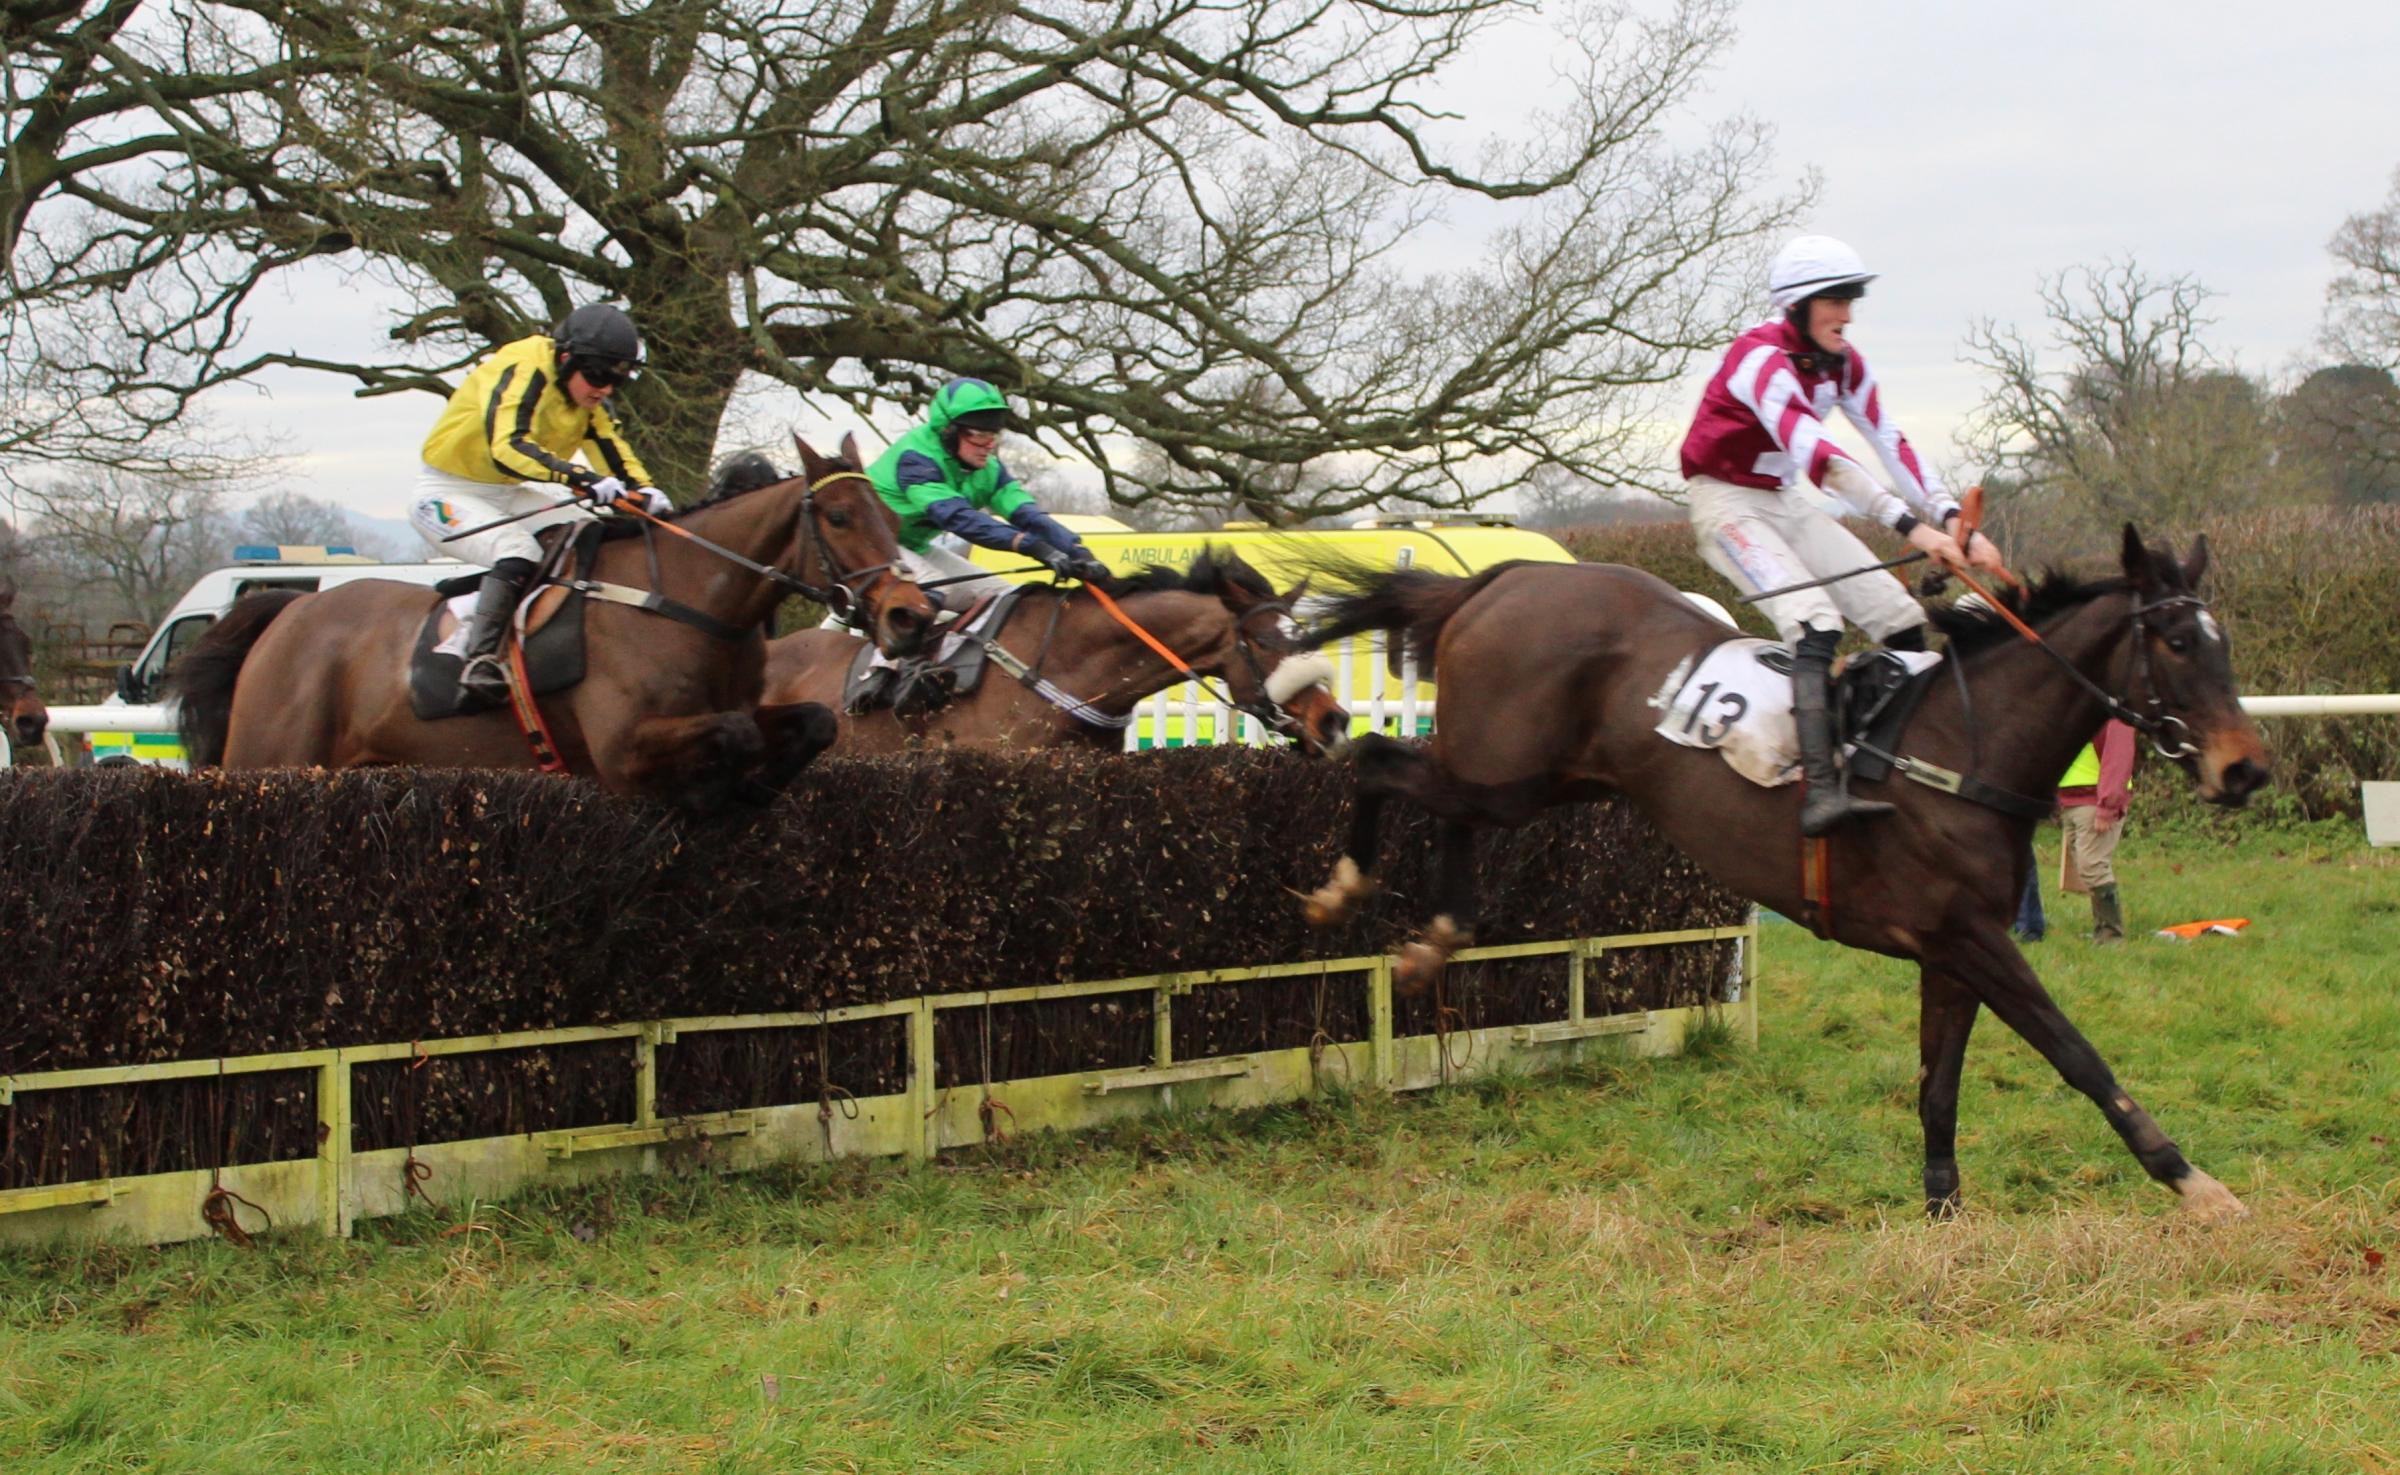 Hudson Yard and Martin McIntyre lead General Arrow (yellow) at the last. Photo: Graham Fisher